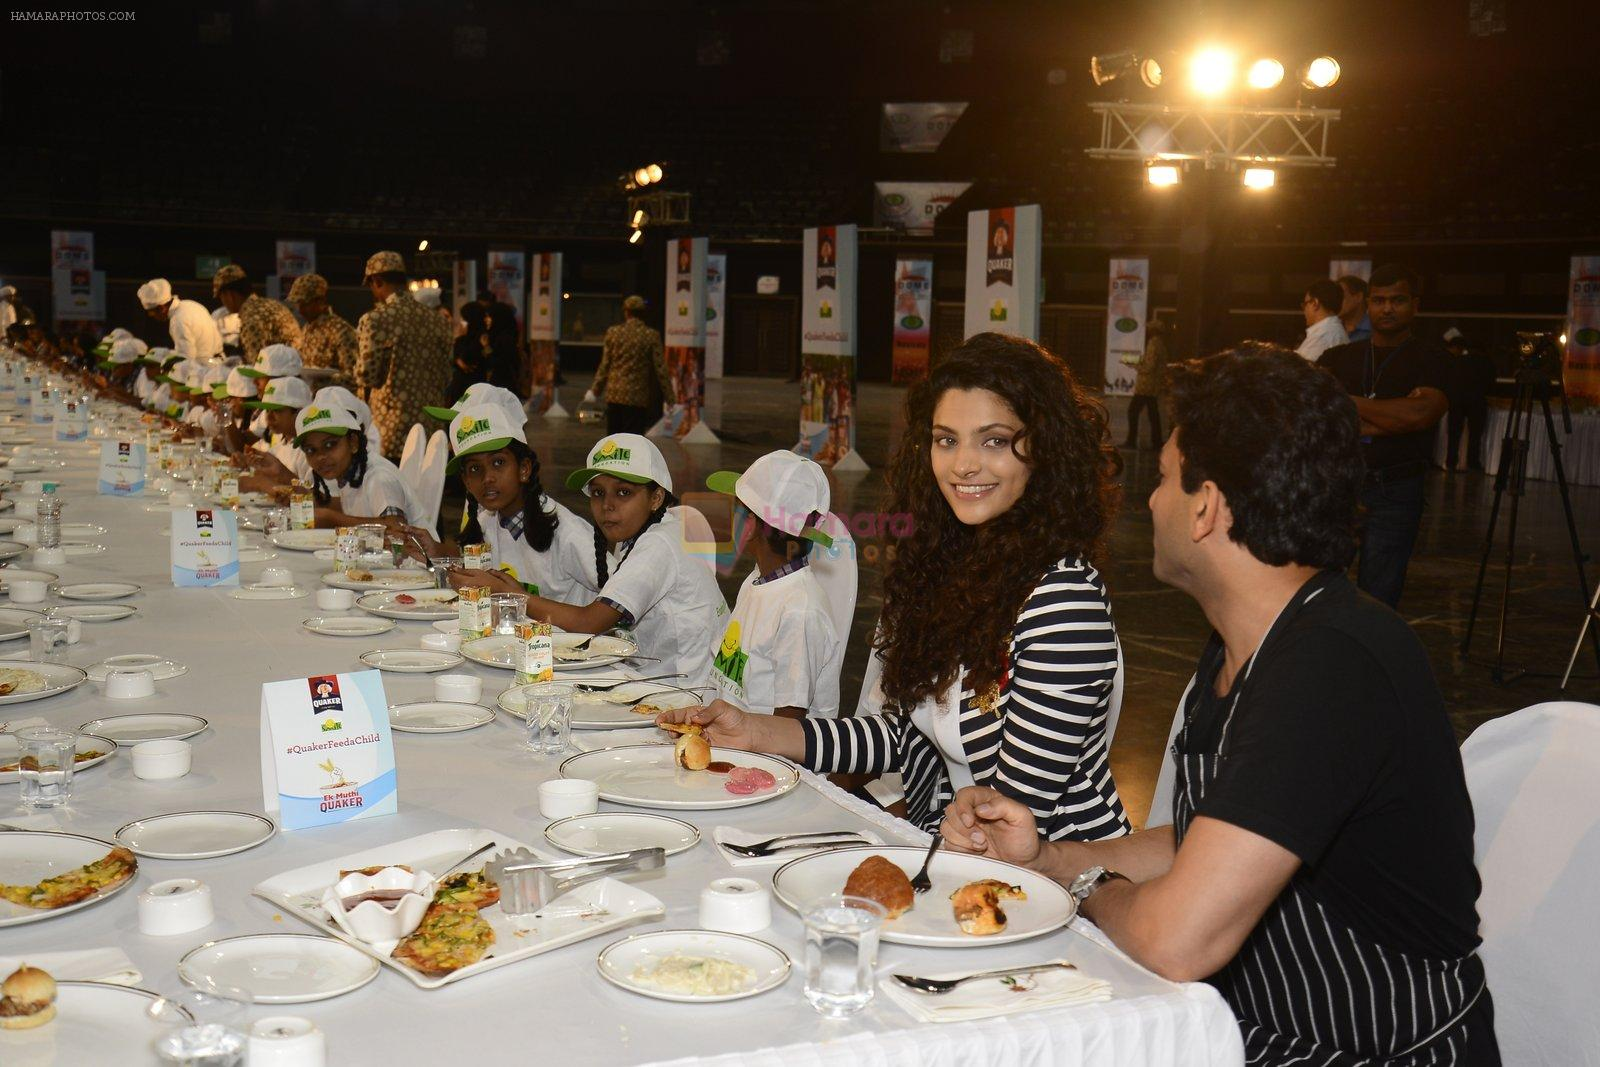 Saiyami Kher and Chef Vikas Khanna for world food day event by smile foundation at Quaker on 16th Oct 2016